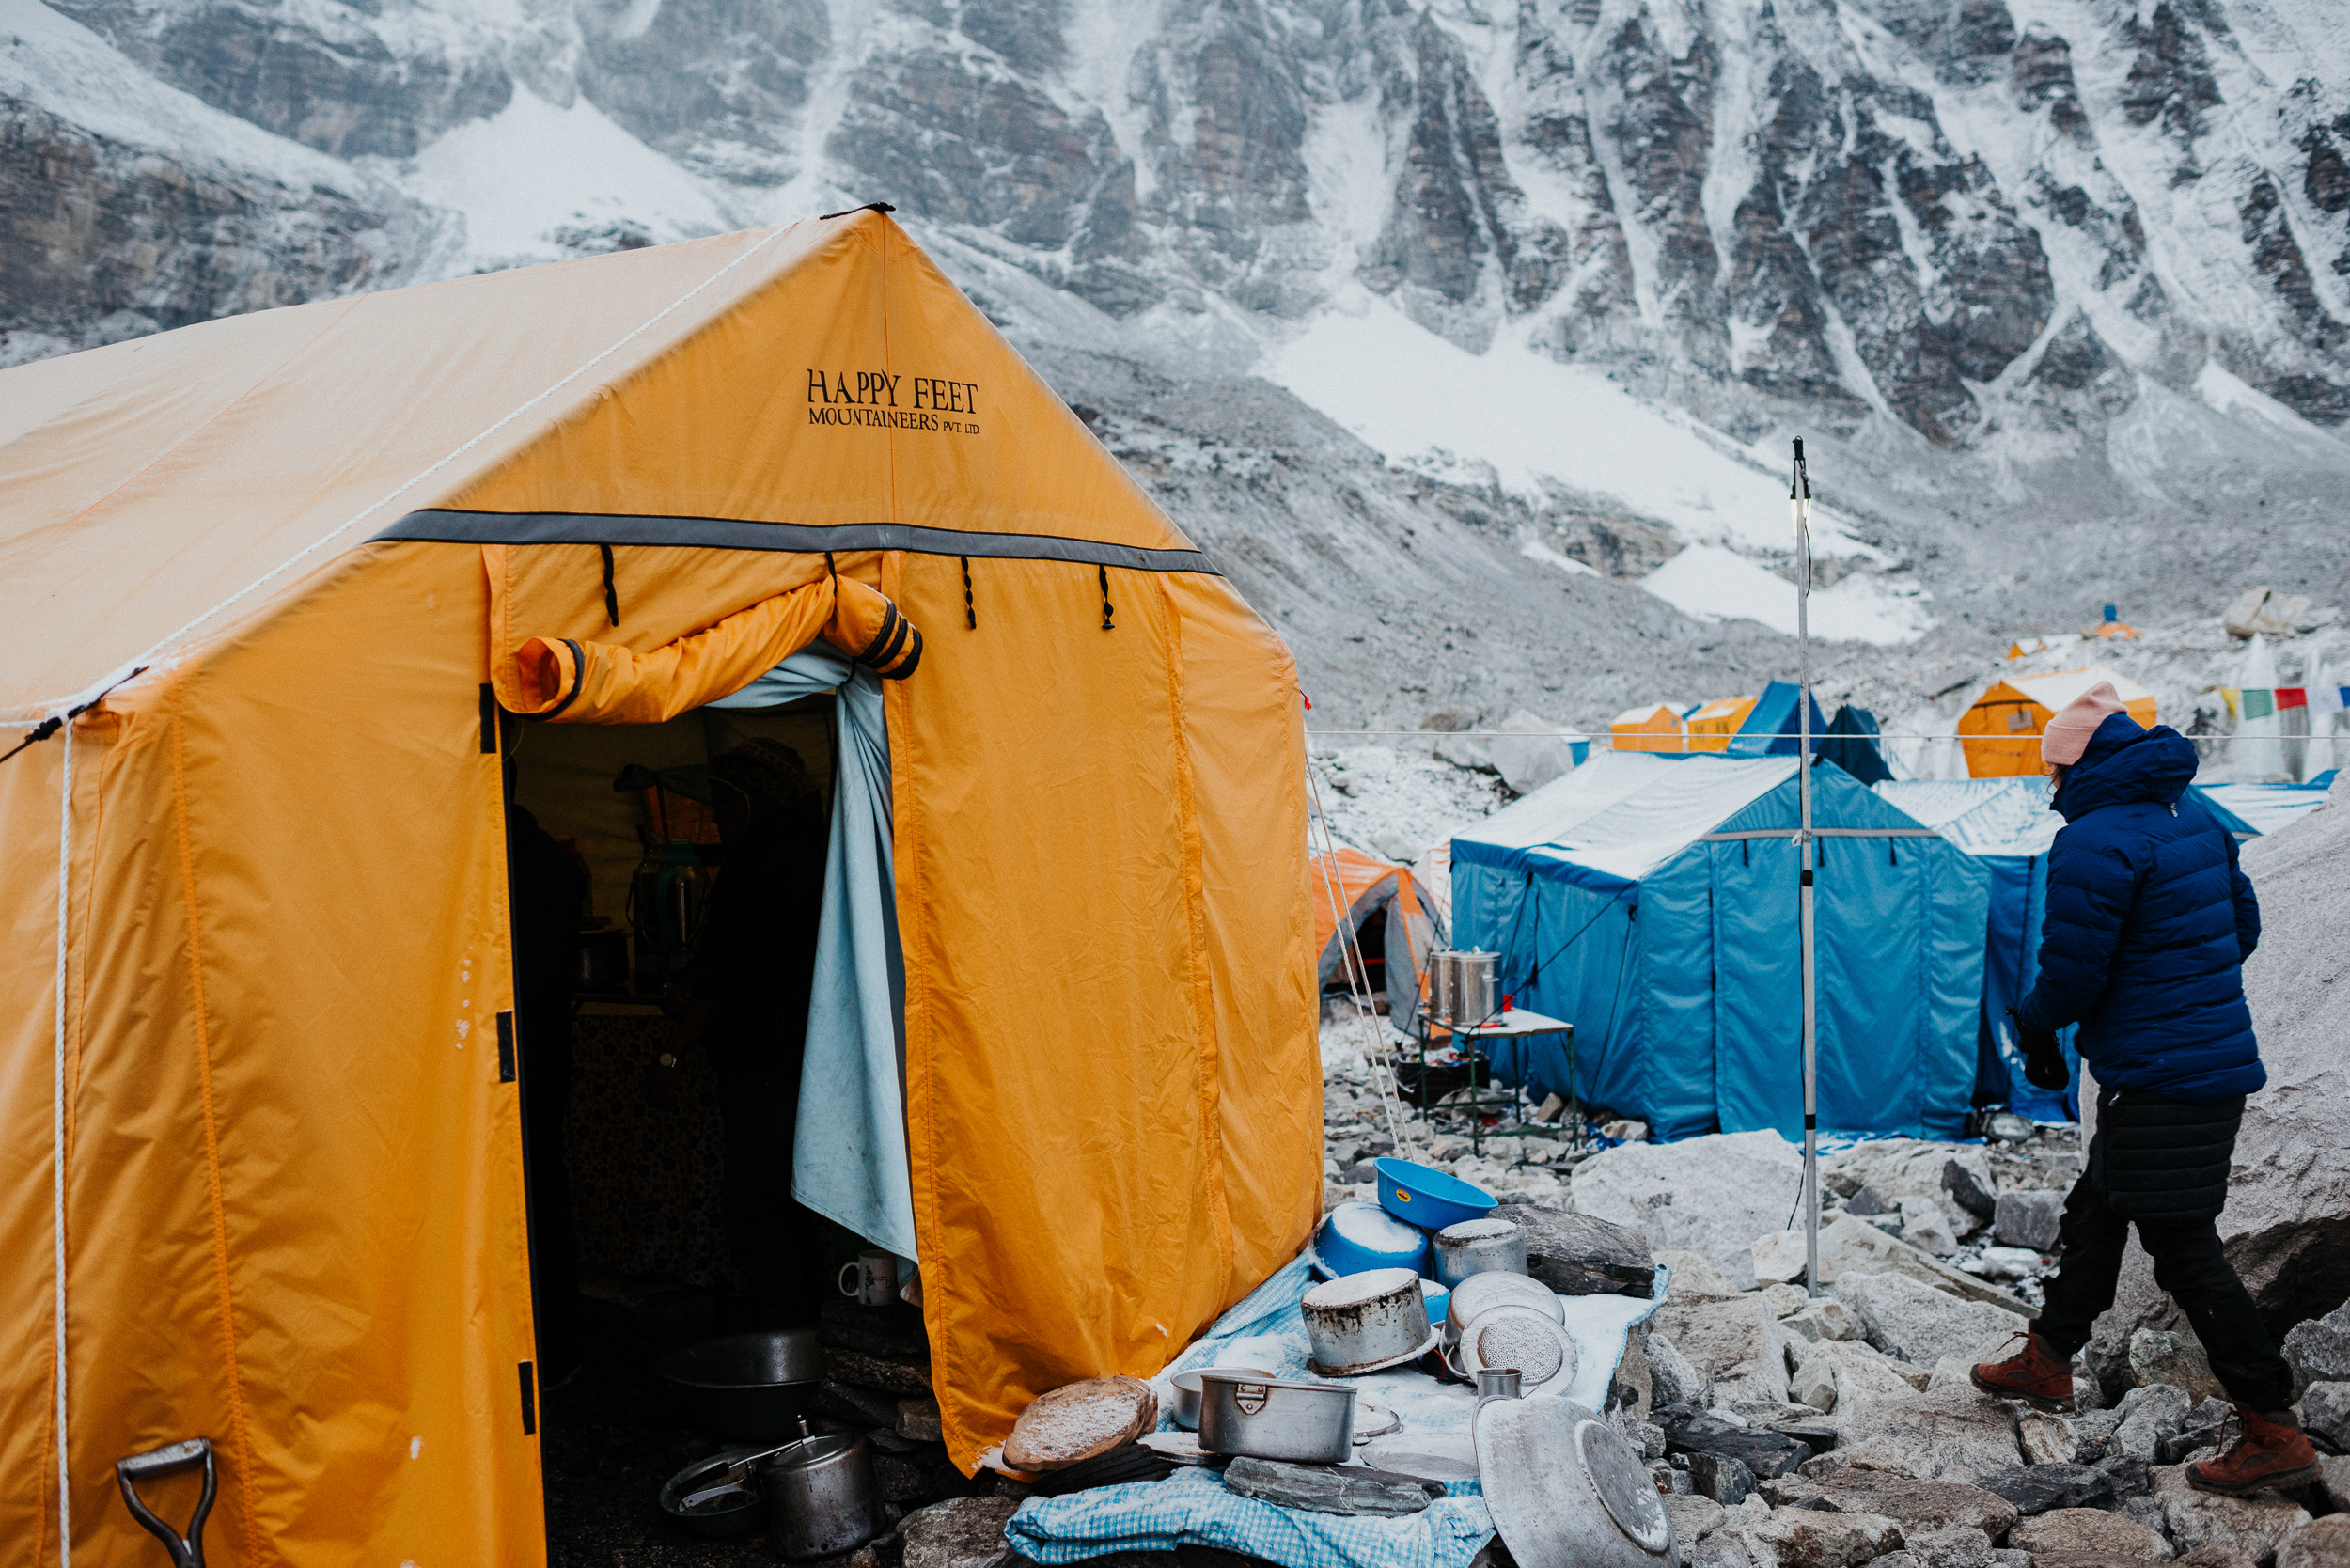 Nepal_EverestBaseCamp_2019_TaraShupe_Photography_DSC_4329.jpg